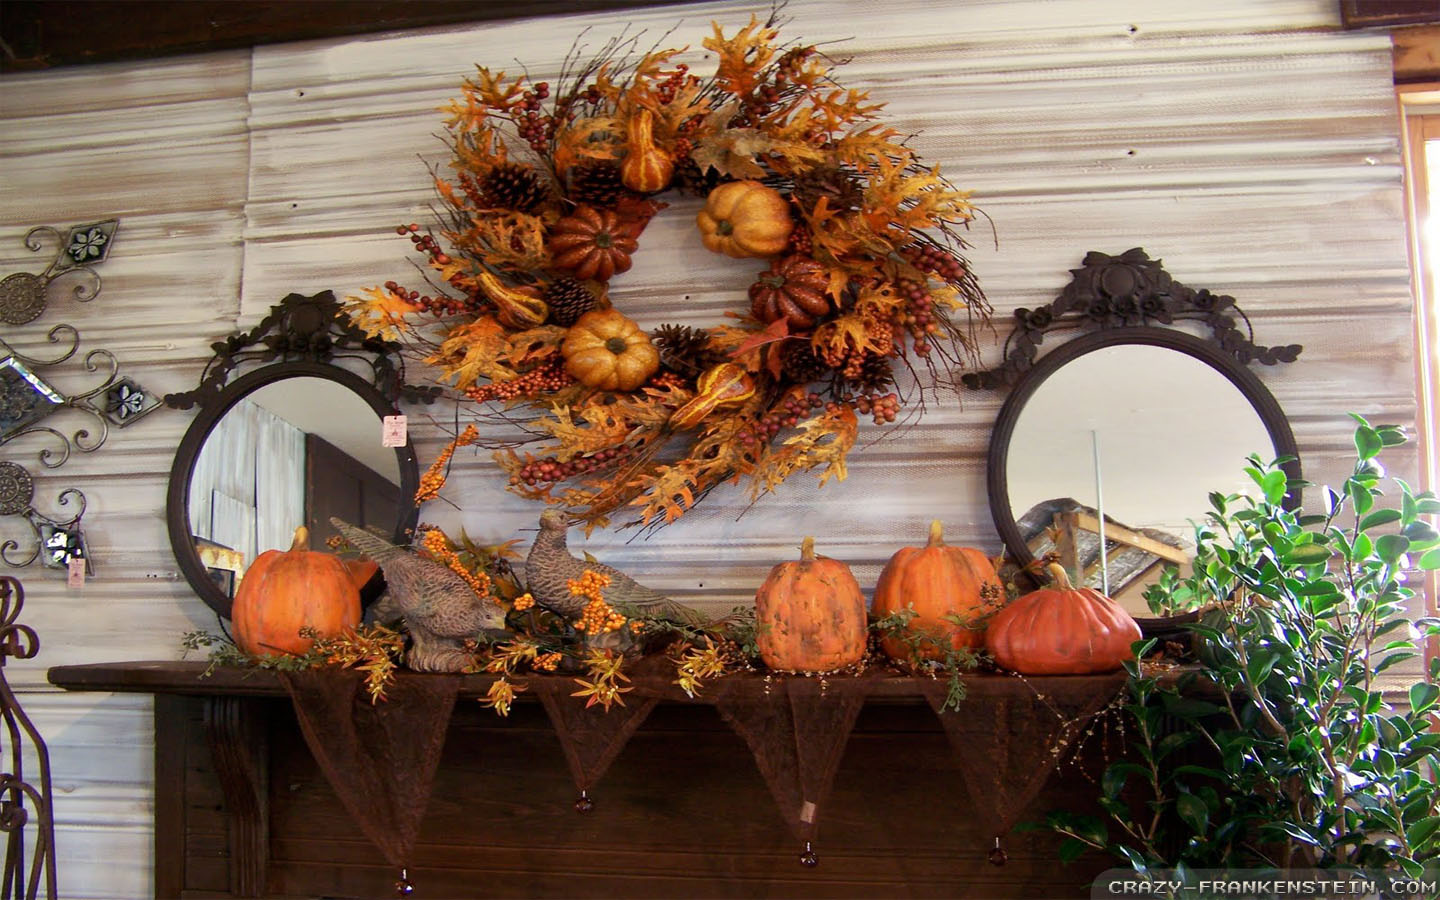 Free Desktop Wallpaper Fall Scenes Thanksgiving Wreath Wallpapers Crazy Frankenstein